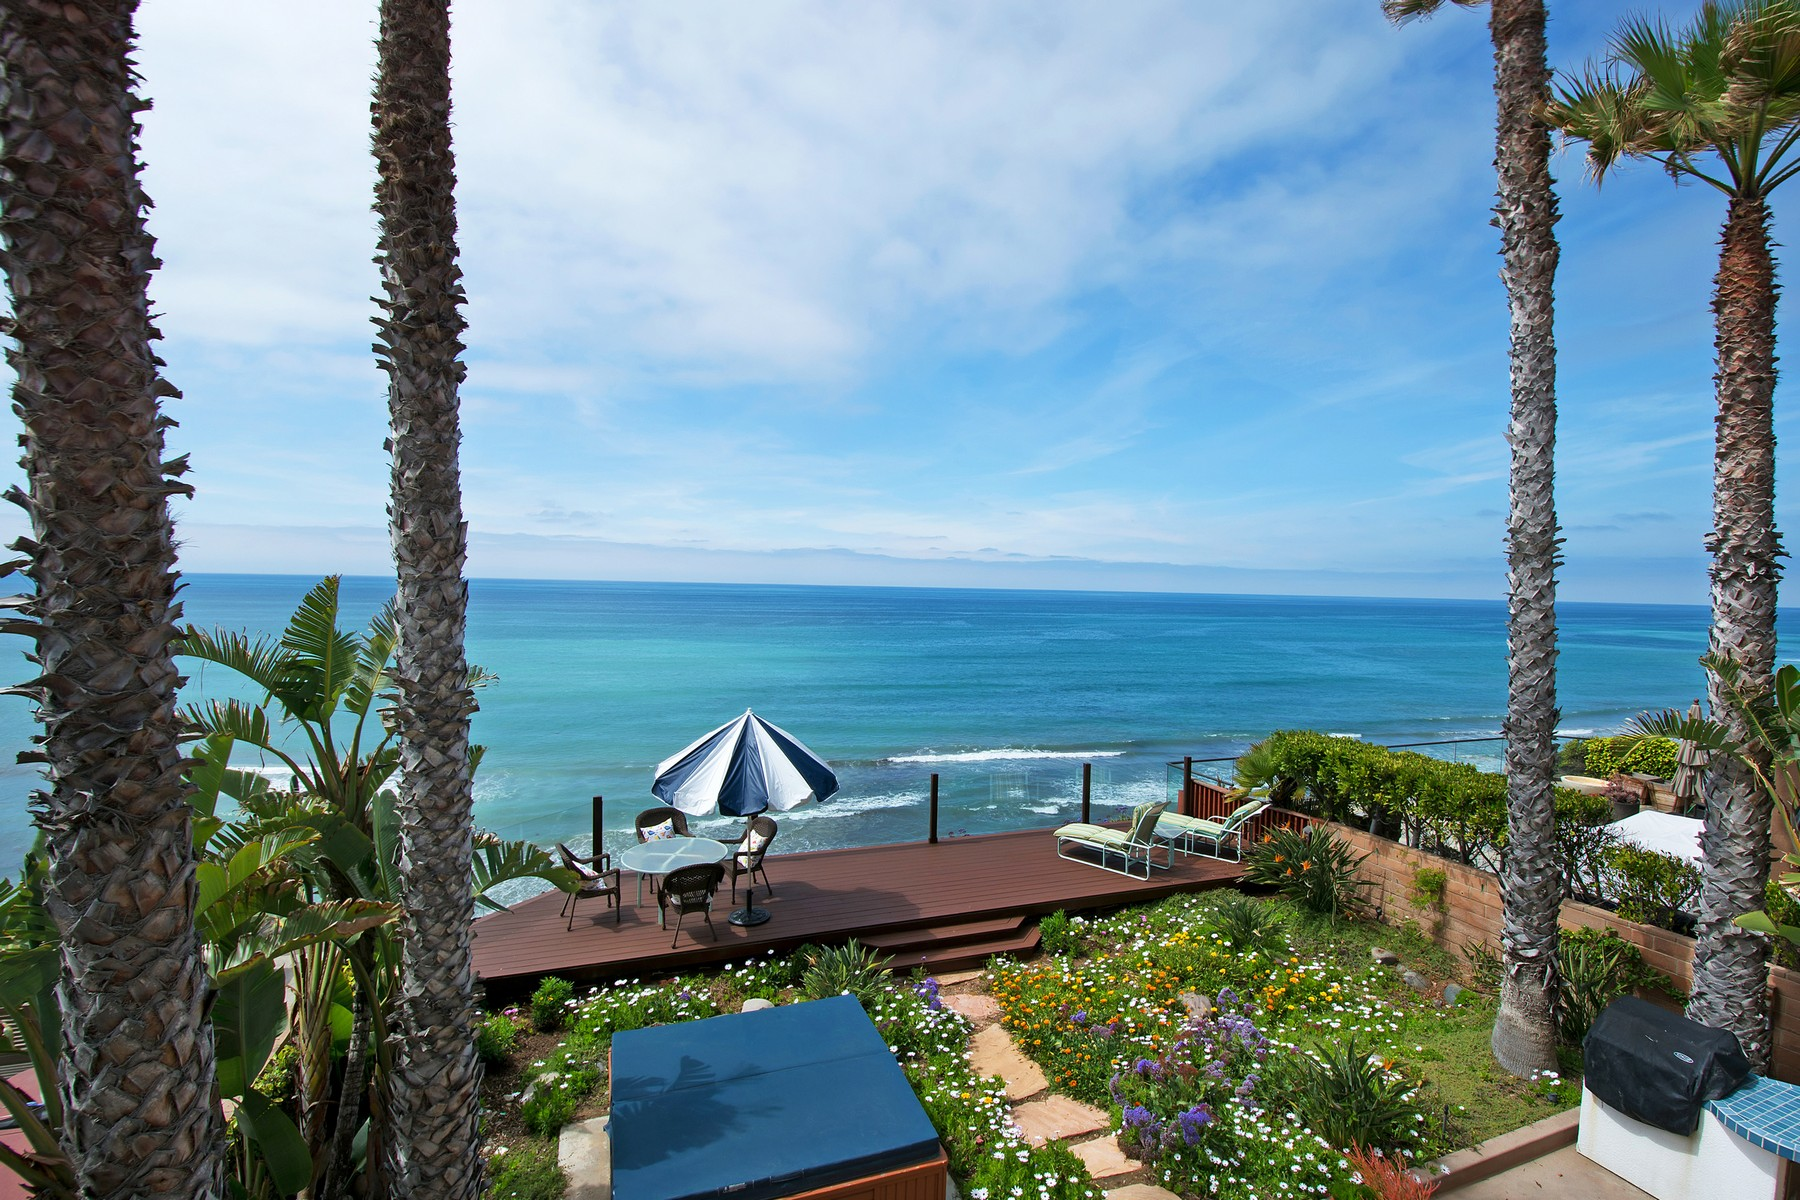 Single Family Home for Sale at 304 Neptune Avenue Encinitas, California 92024 United States